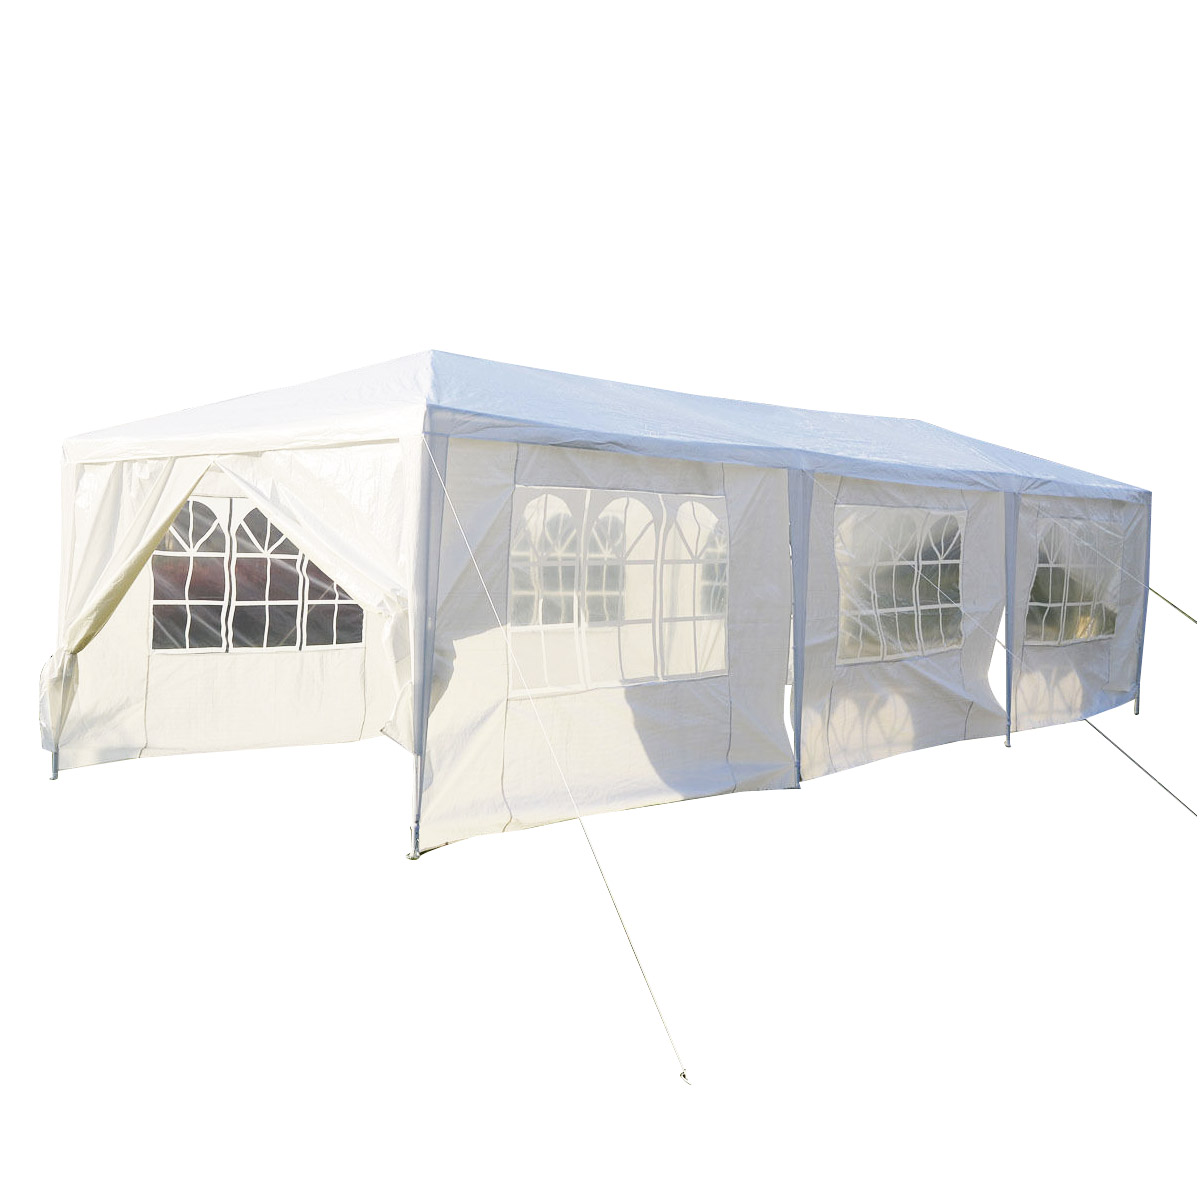 Gymax White Wedding Tent 10'x30'Outdoor Party Canopy Events - image 1 of 10